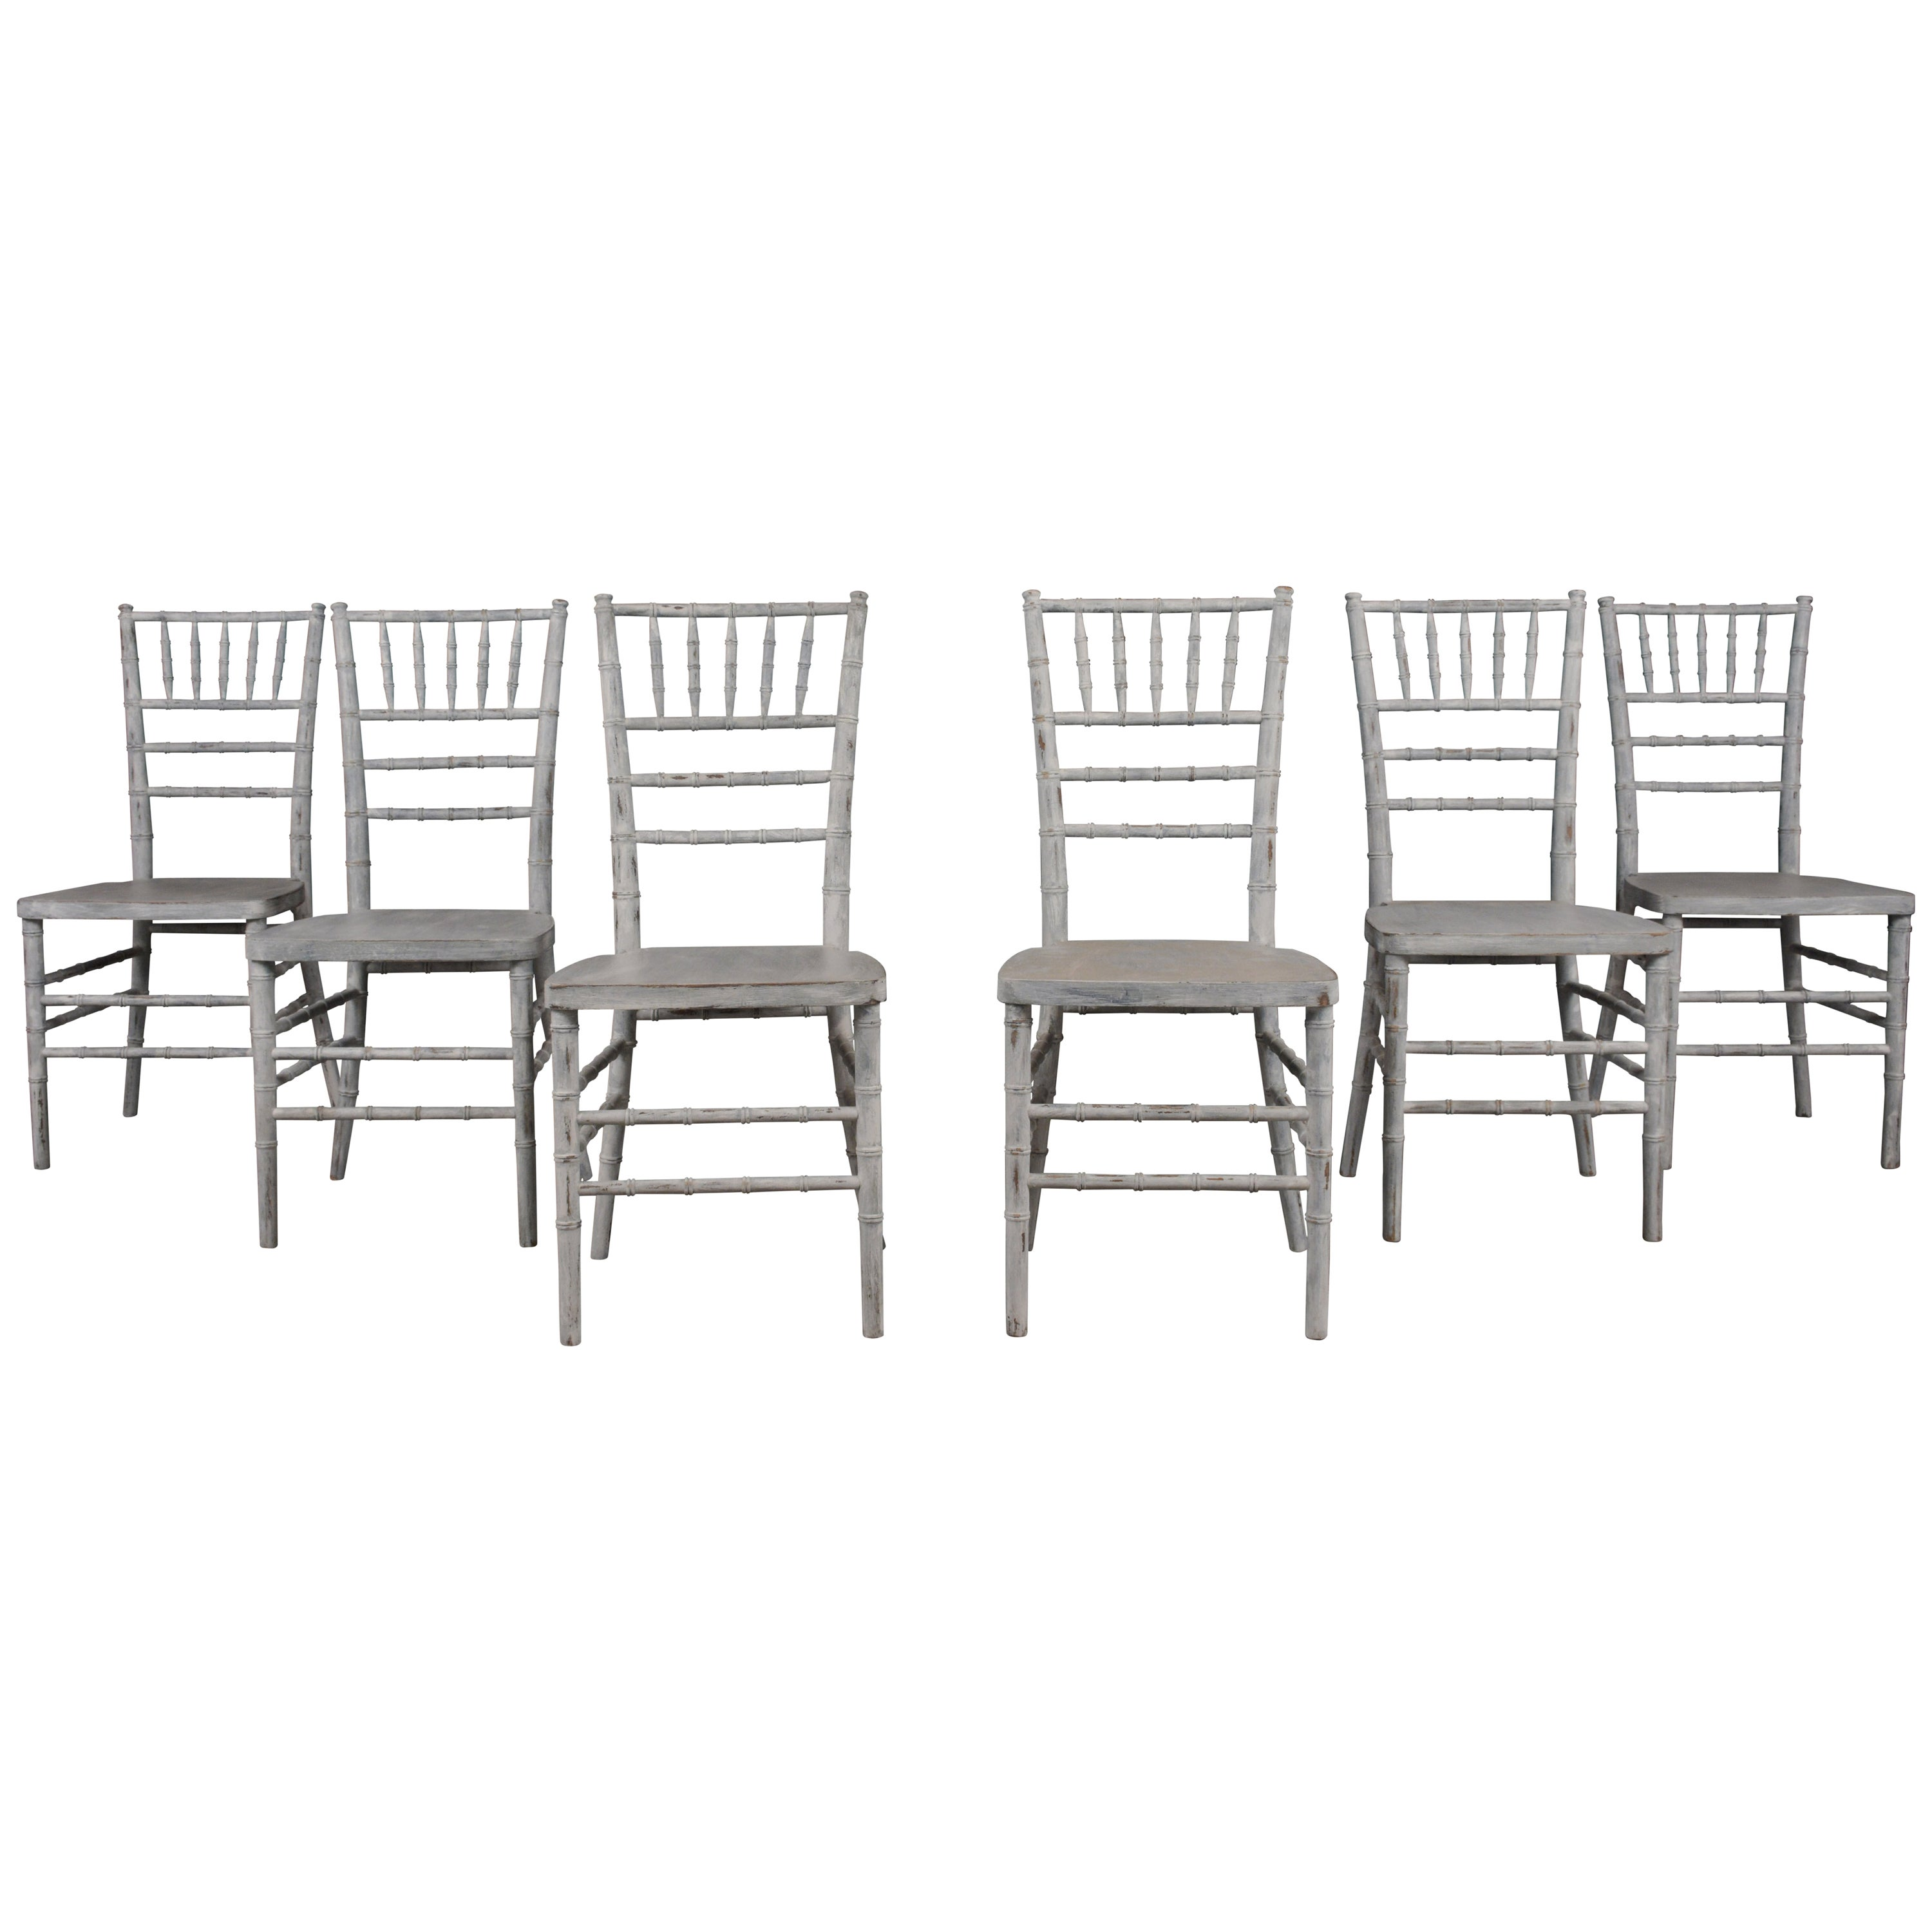 Set of 6 Faux Bamboo Dining Chairs